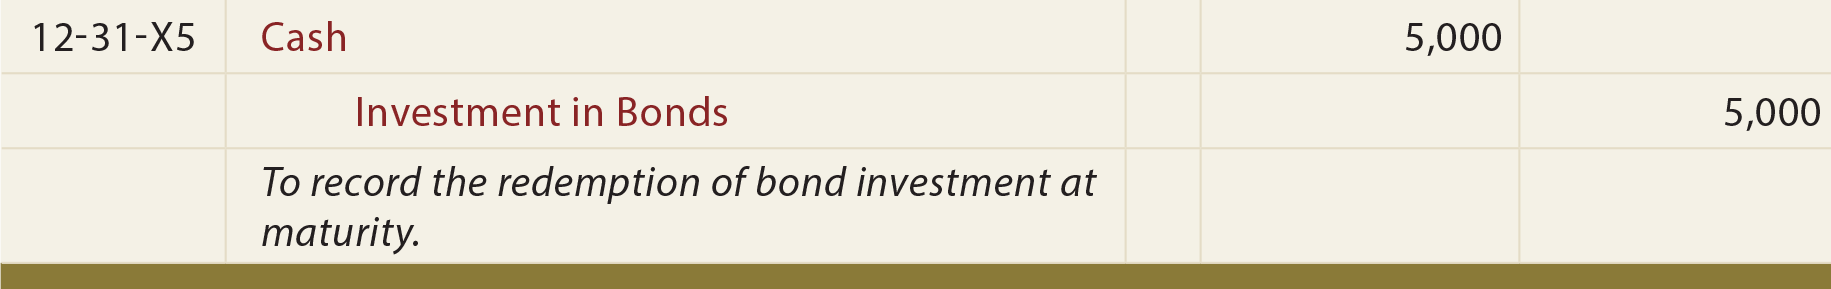 Investment in Bonds at a Discount General Journal Entry - To record the redemption of bond investment at maturity